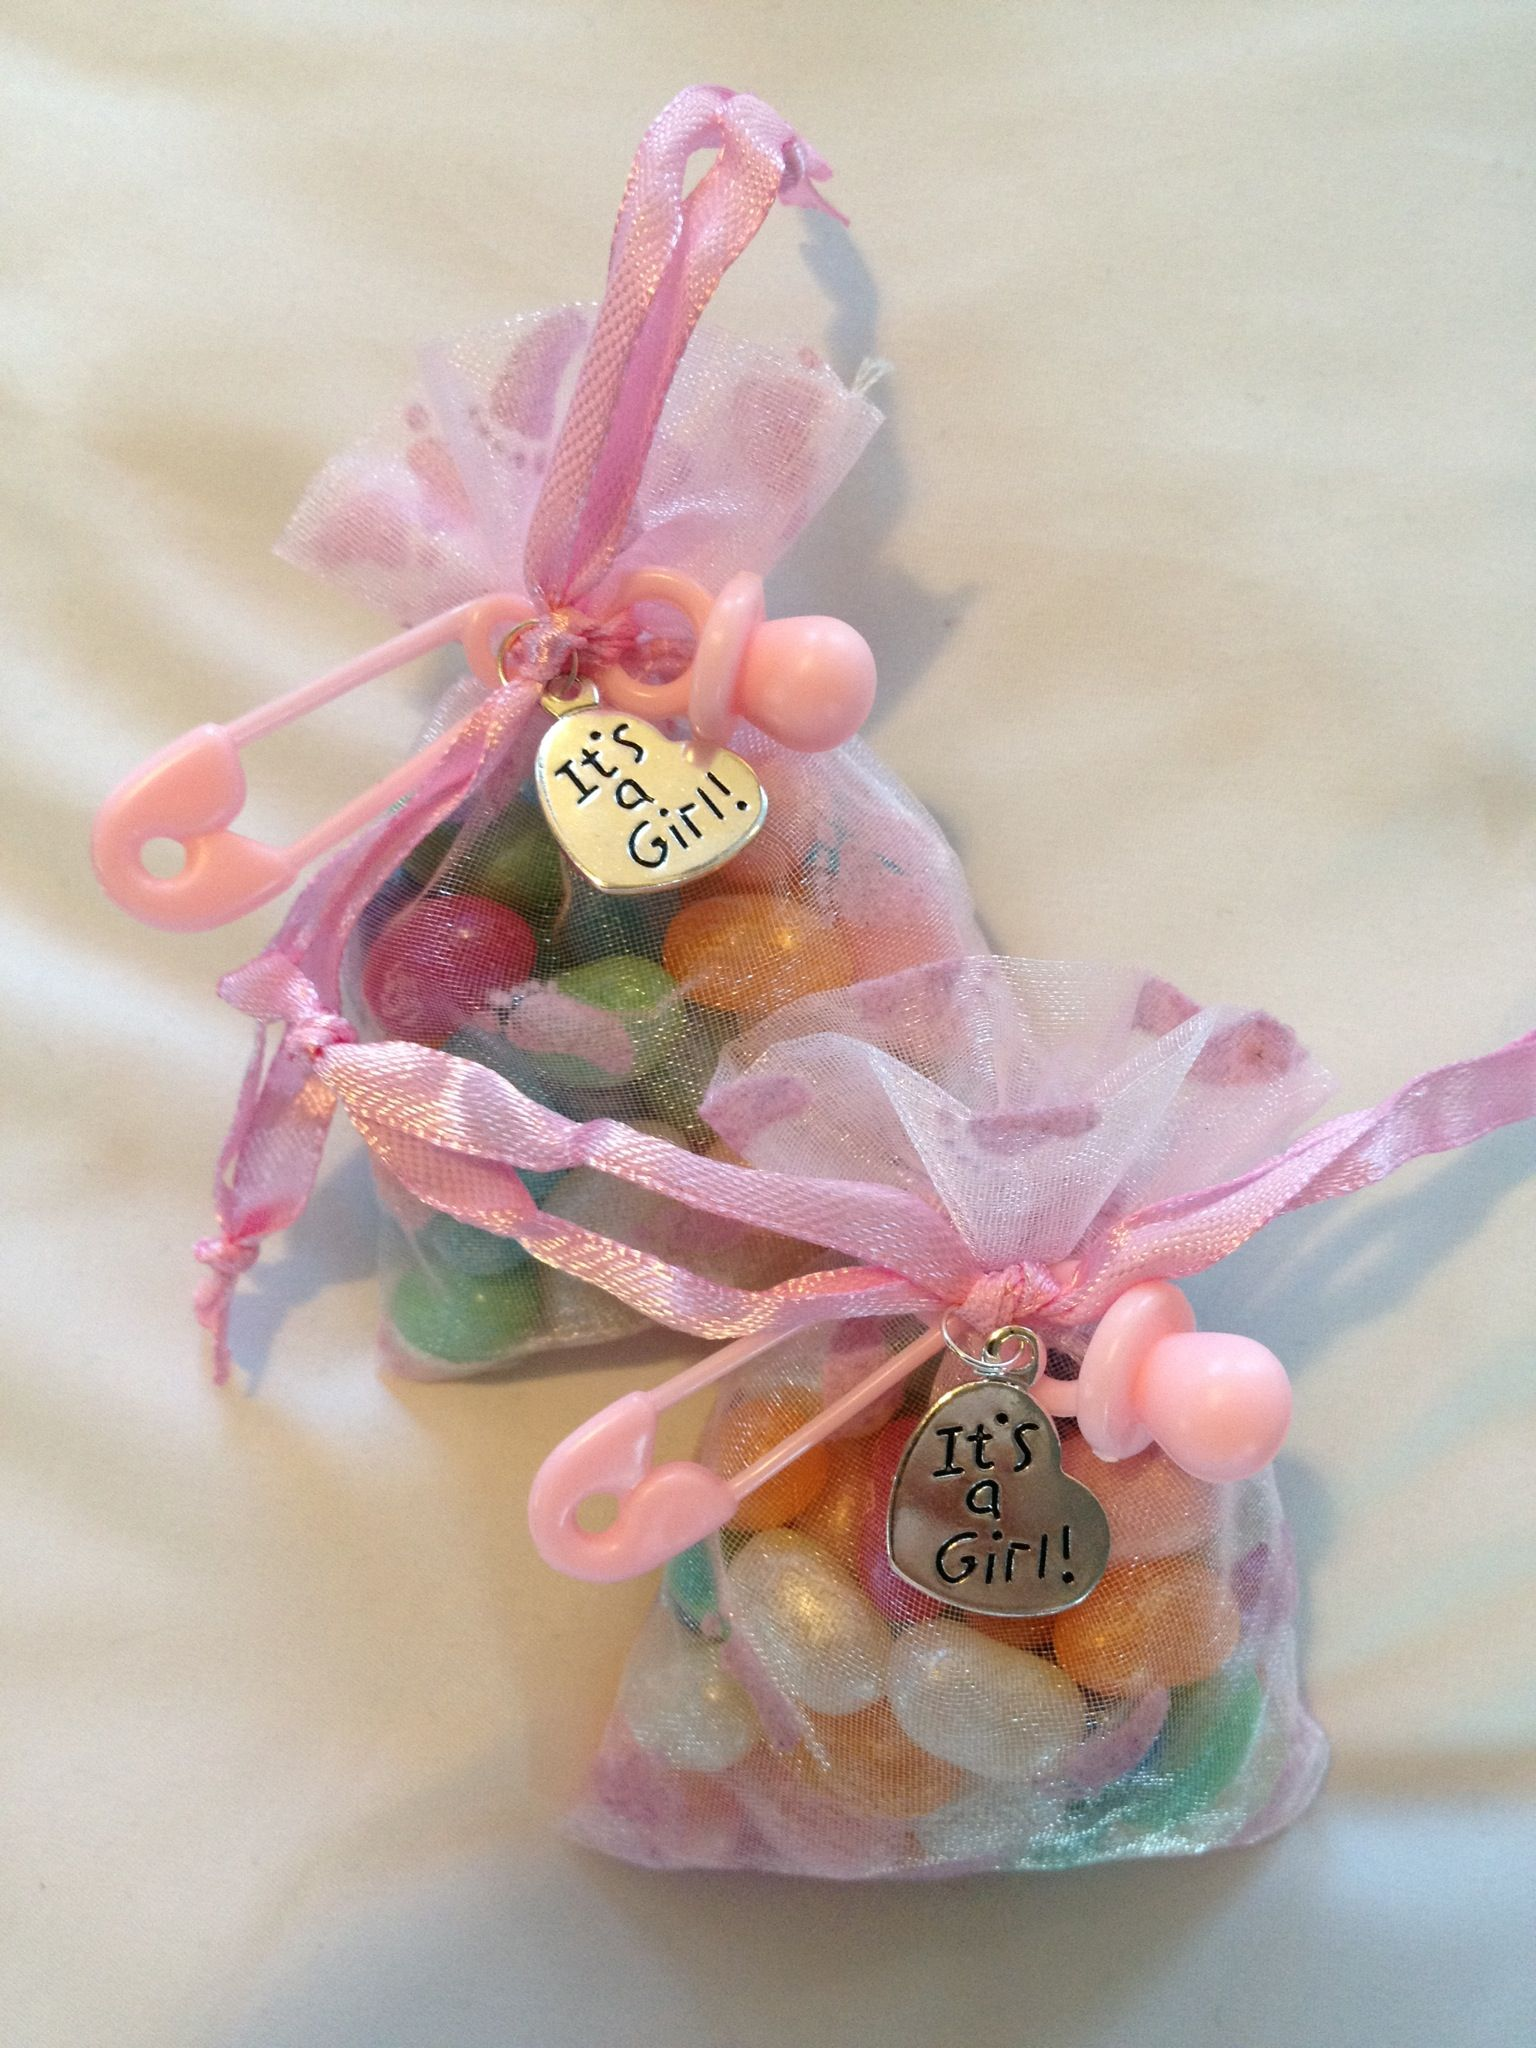 It\'s a girl! Baby shower party favors. | baby shower | Pinterest ...